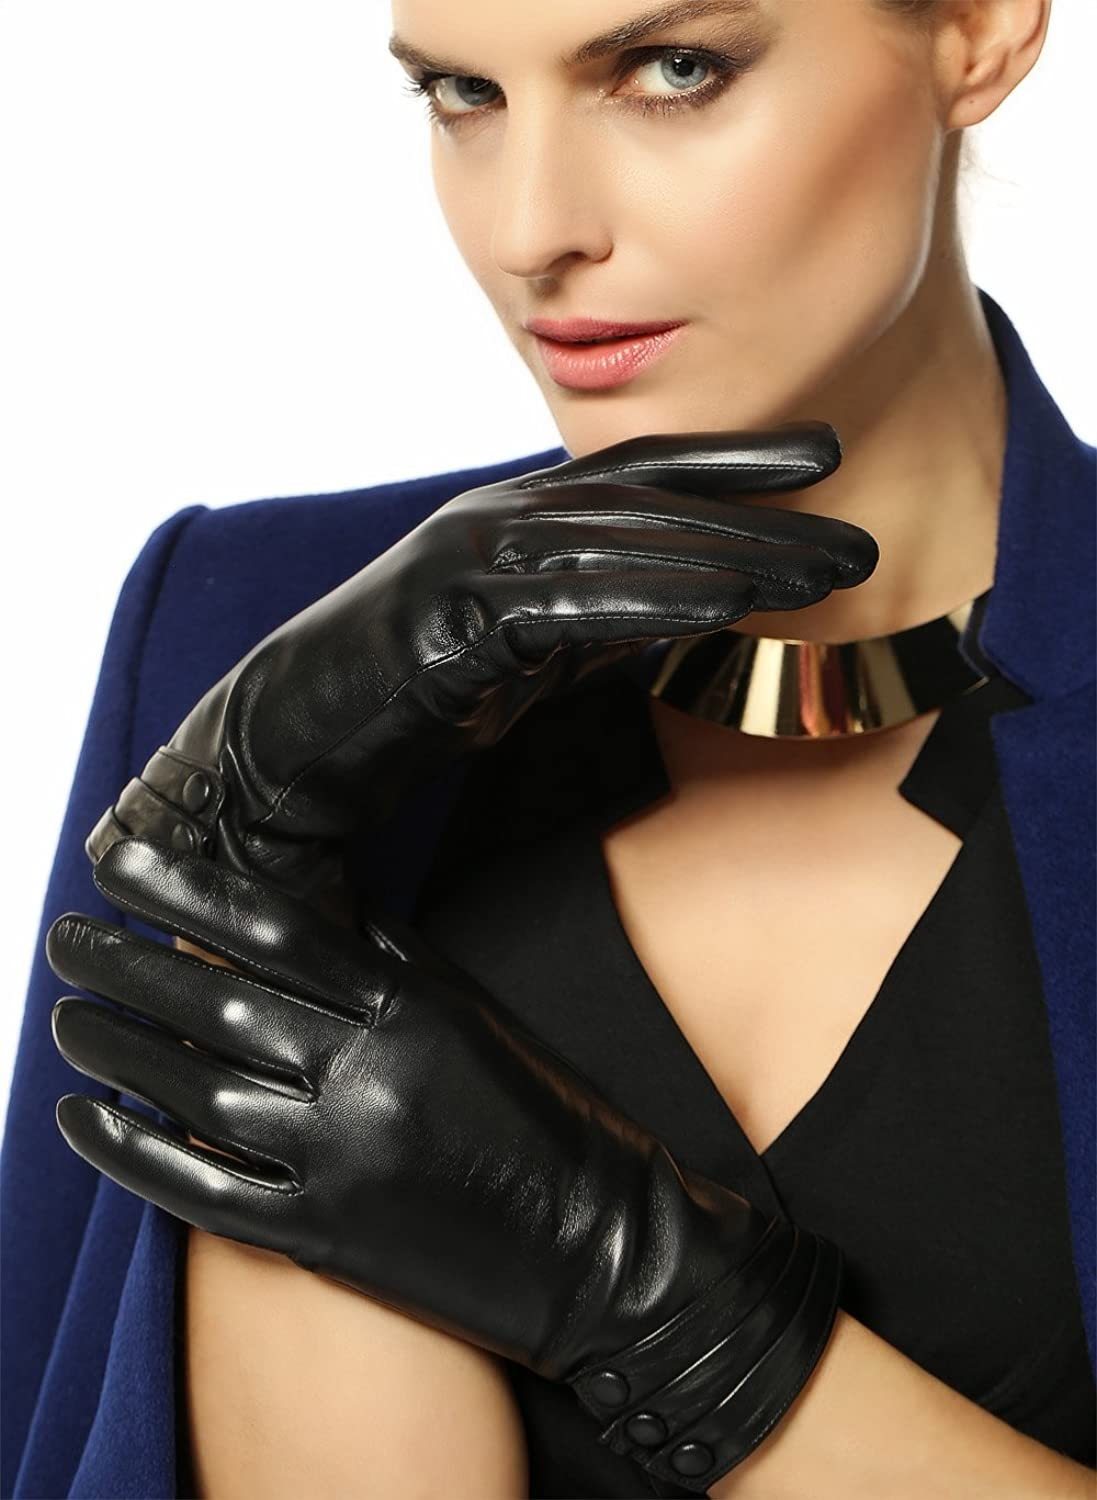 Womens leather gloves sydney - Warmen Women S Touchscreen Texting Driving Winter Warm Nappa Leather Gloves 6 5 Us Standard Size Black Touchscreen Function Cashmere Lining At